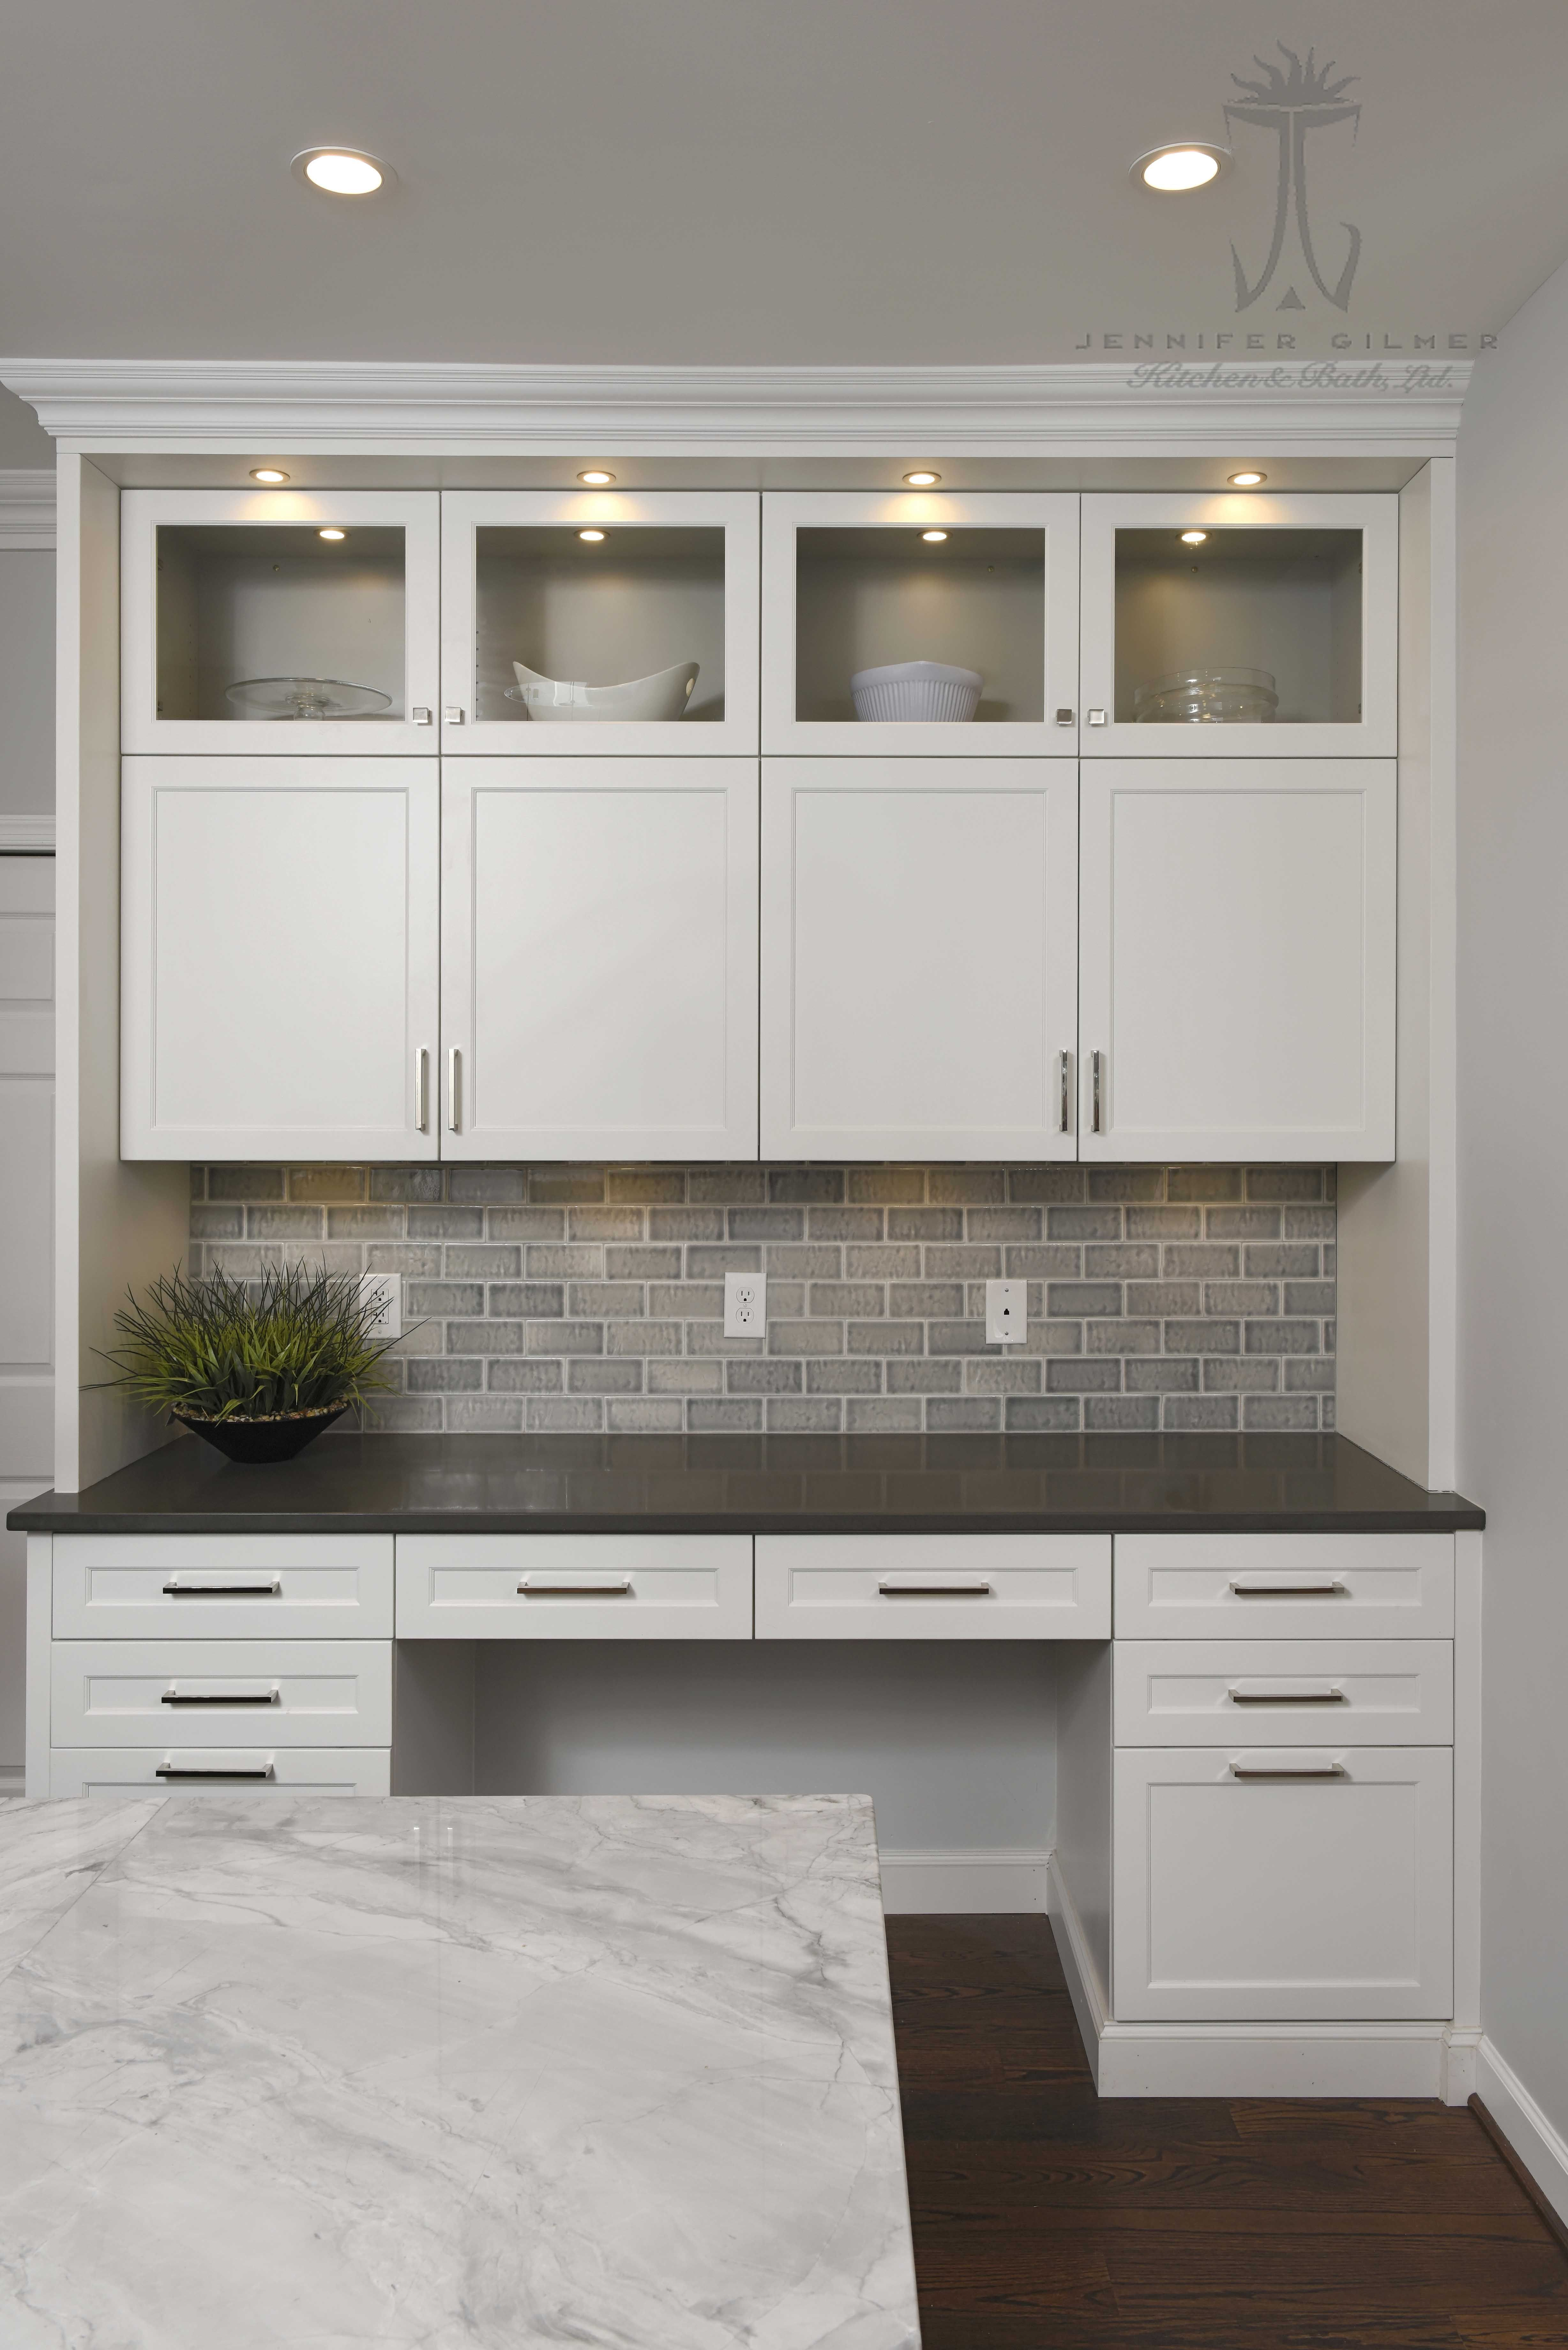 Kitchen Design By #PaulBentham4JenniferGilmer In Bethesda, Maryland  Features Top Knobs M1825 Square Bar Pulls